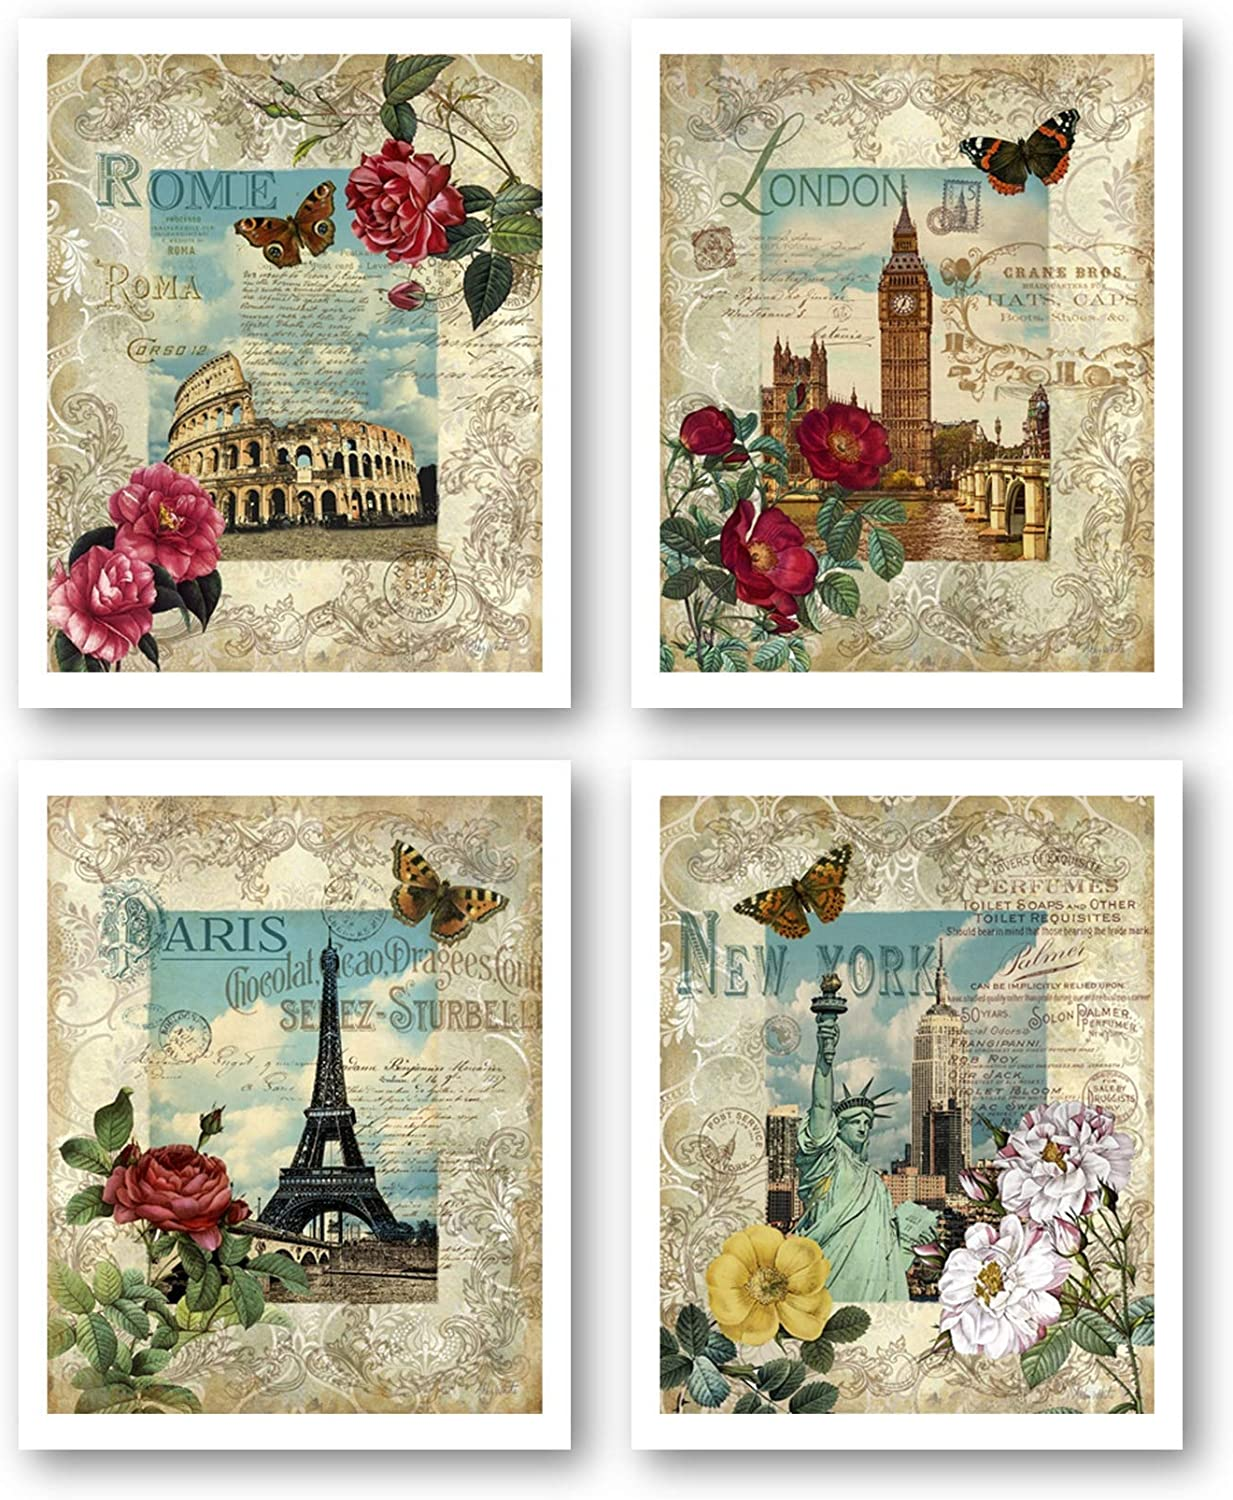 London, New York, Rome, Paris Vintage Wall Decor Artwork - Set of 4 8 x 10 Unframed Prints - Great Gift for Housewarming, Home Office and Bedroom Art - Perfect for World Travelers